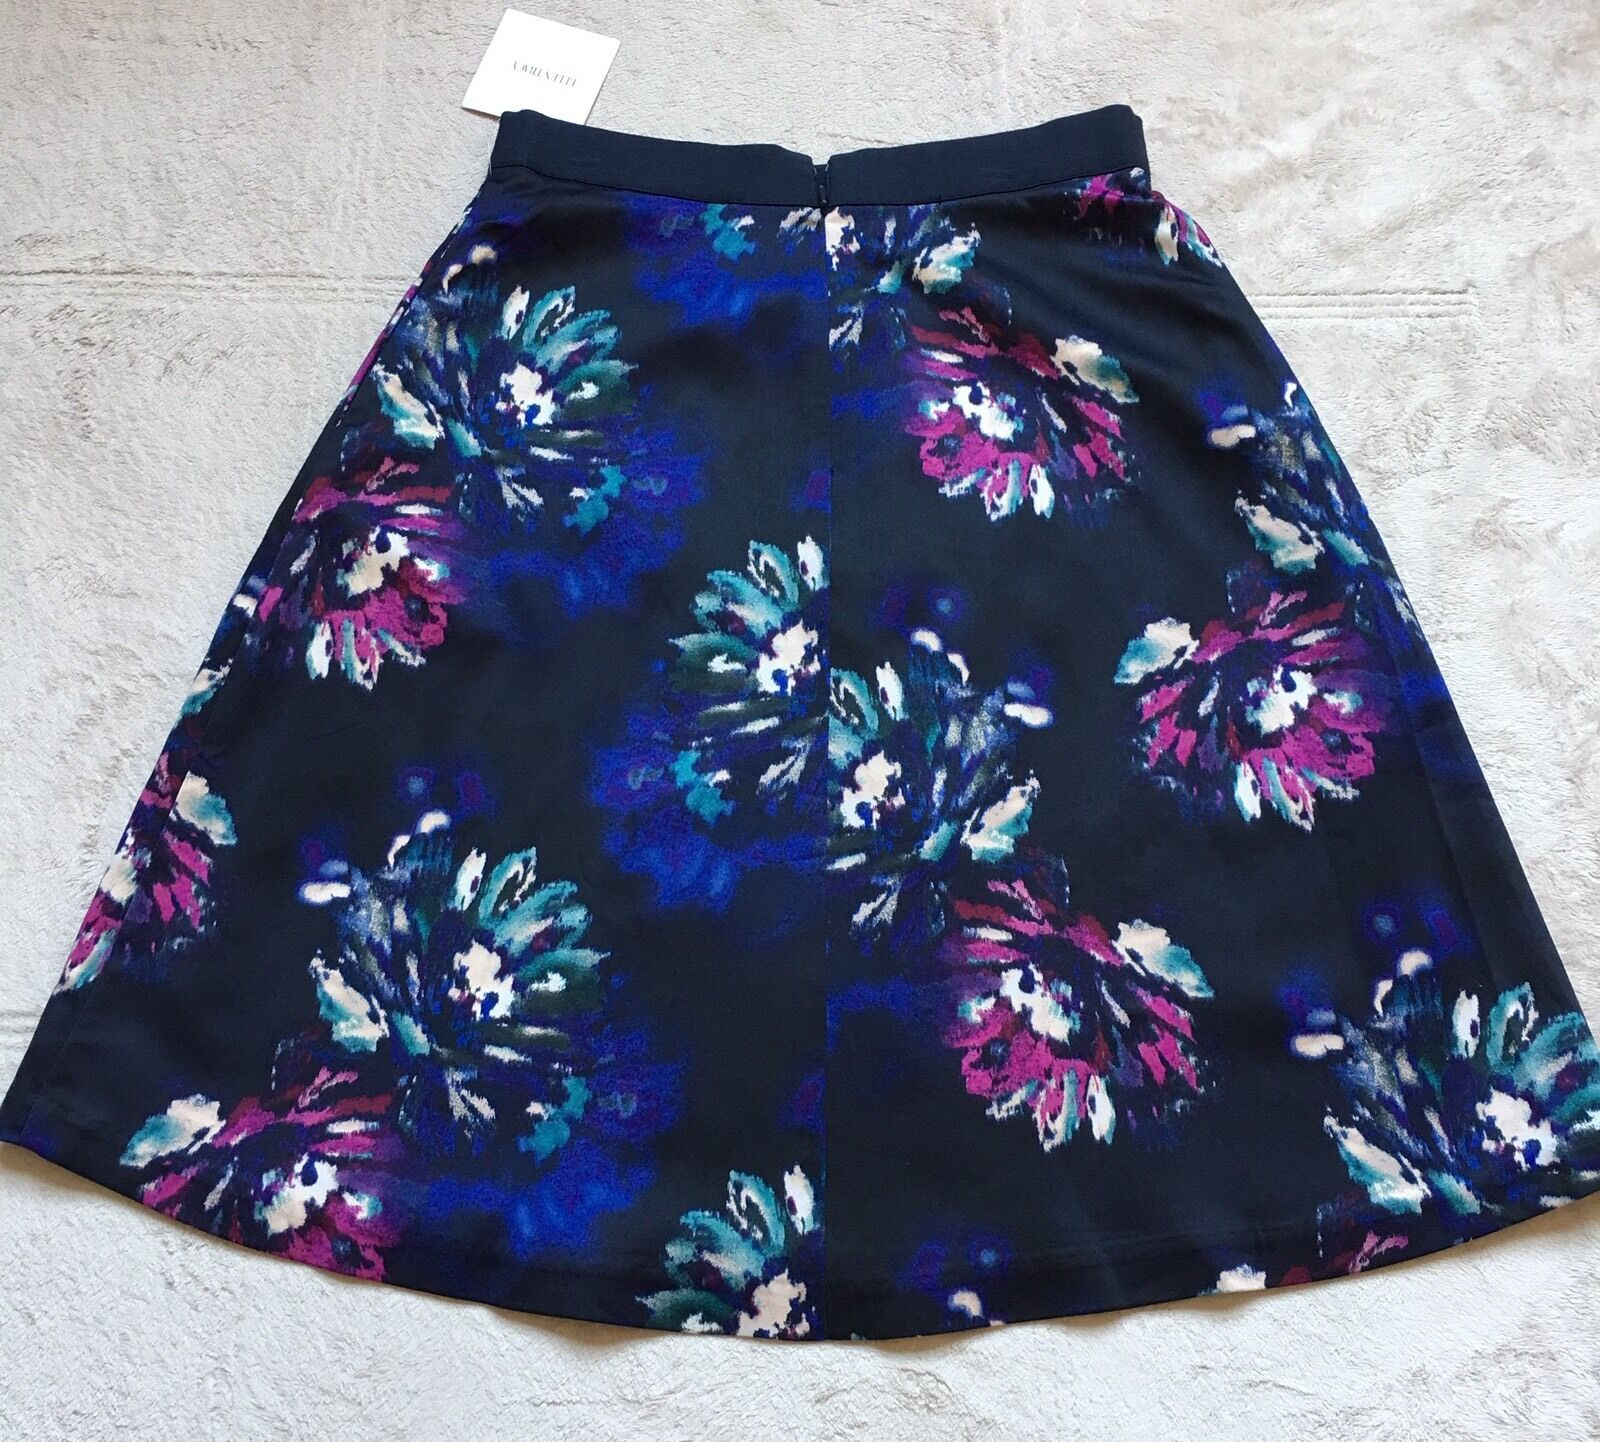 Ellen Tracy Women's Flare Skirt, Size 6, Navy bluee & Floral, Pleated Front, NWT